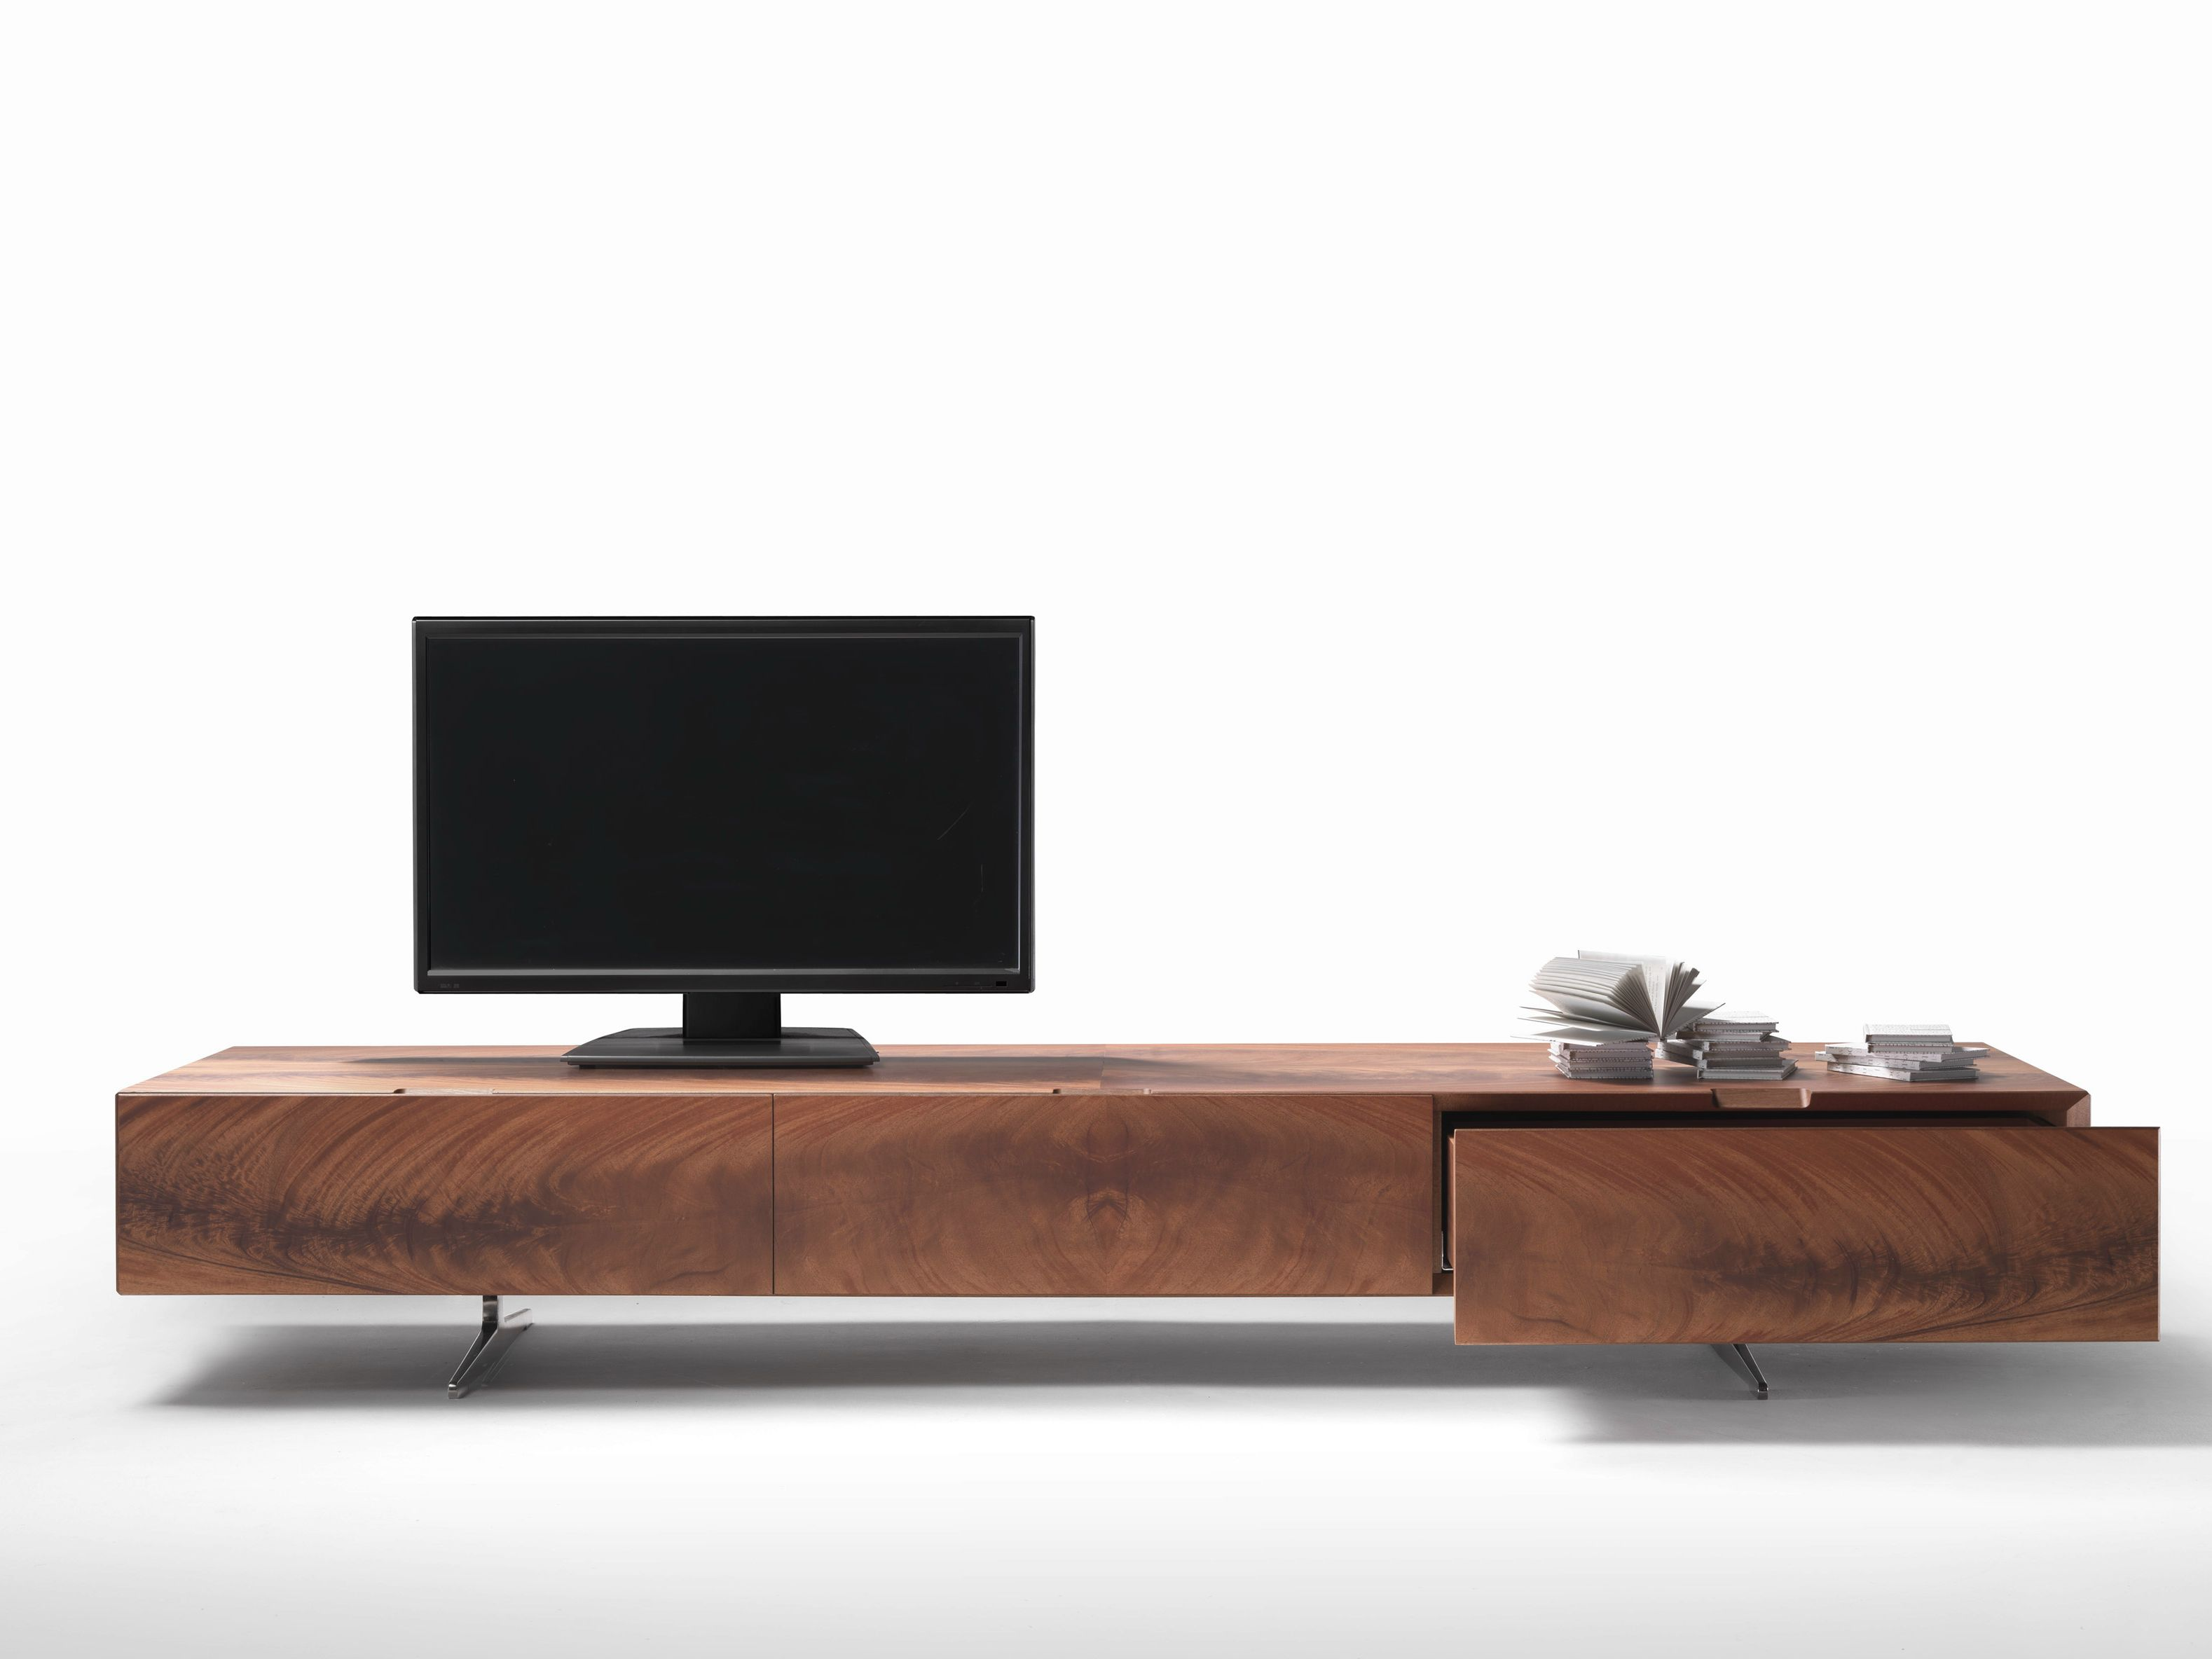 Tv möbel modern  TV-Lowboard aus Holz Kollektion Piuma by FLEXFORM | Design Antonio ...